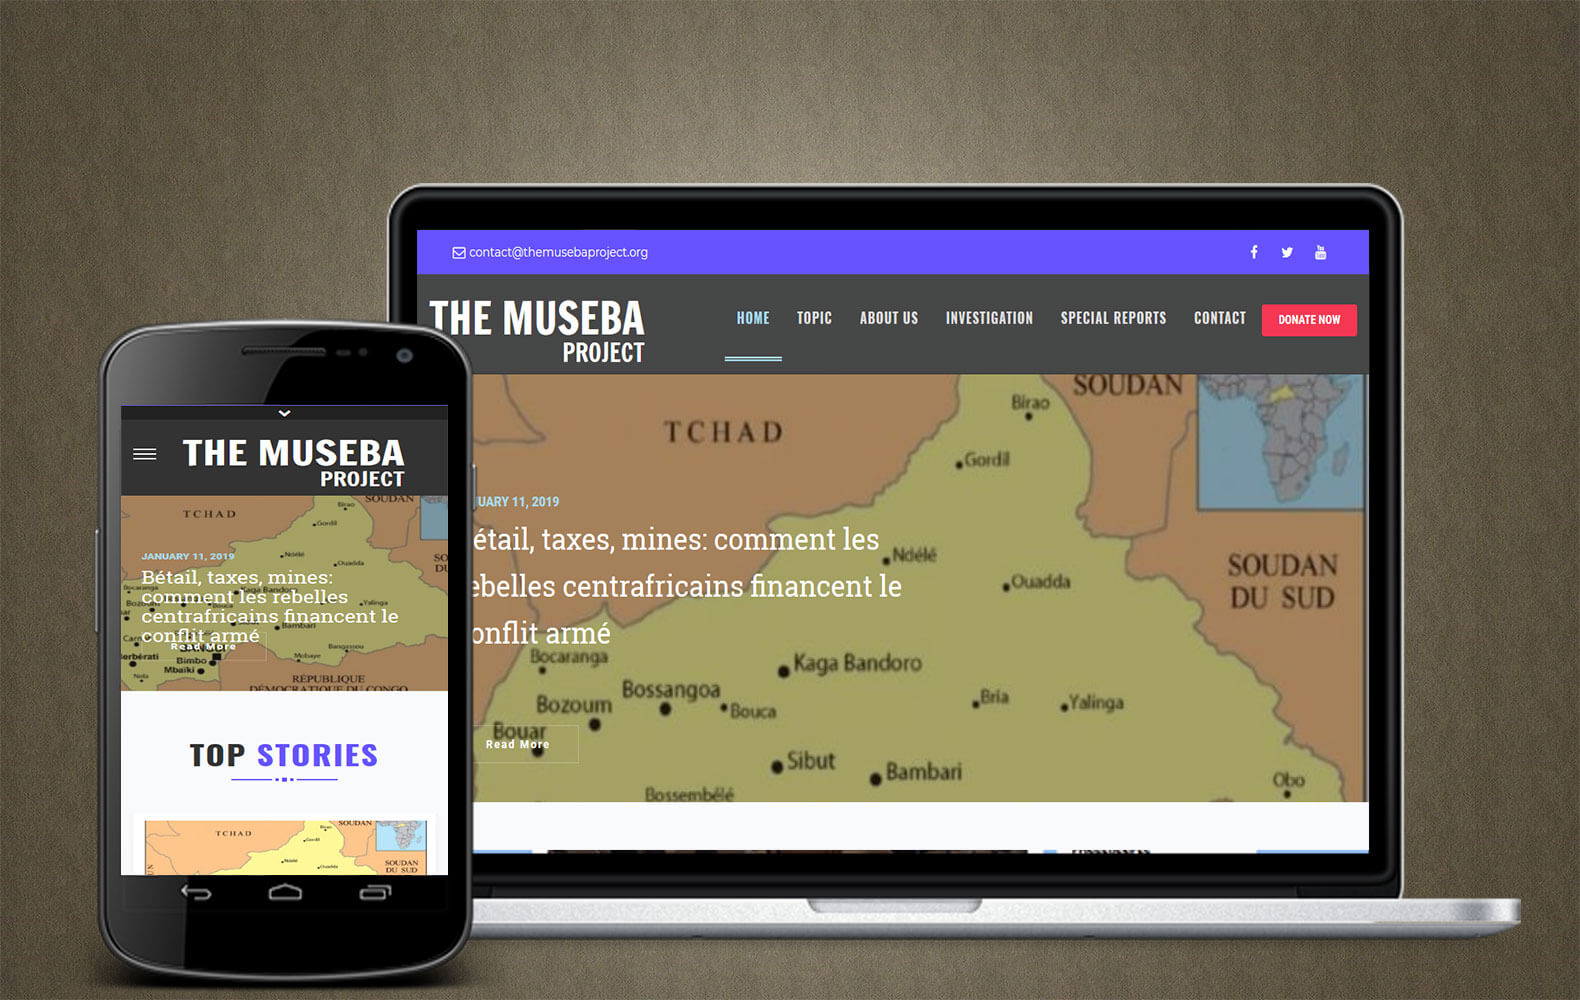 The Museba Project